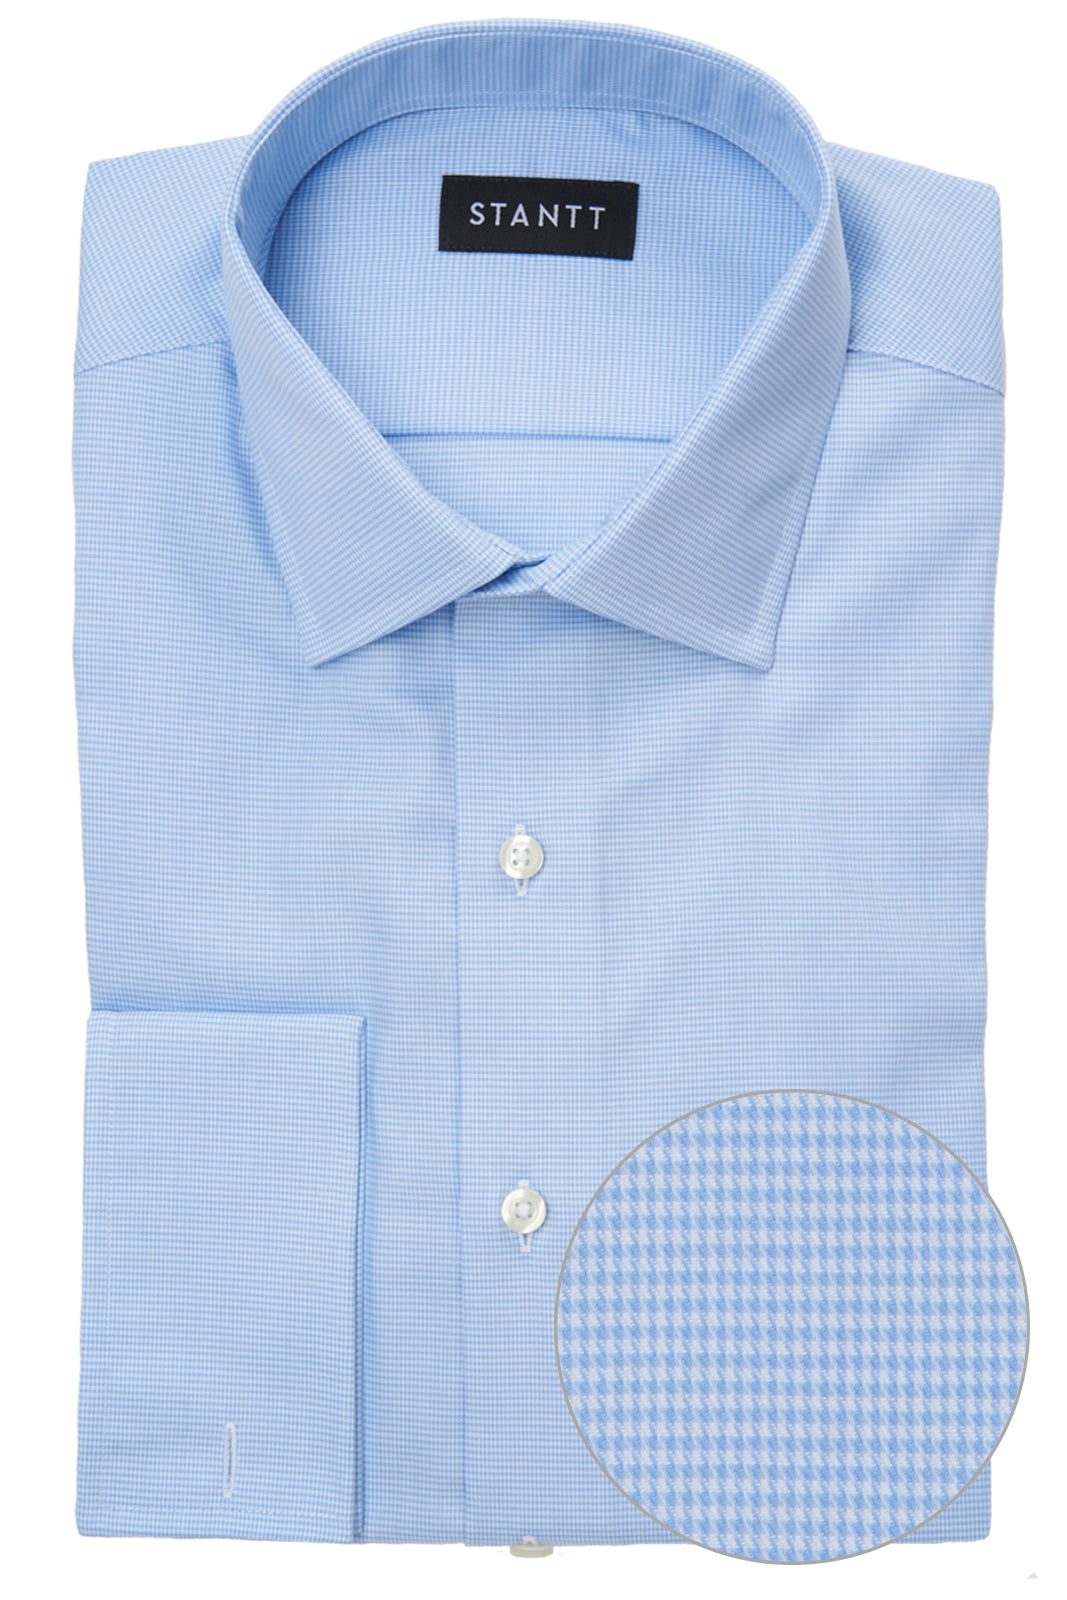 Wrinkle-Resistant Light Blue Houndstooth: Modified-Spread Collar, Barrel Cuff